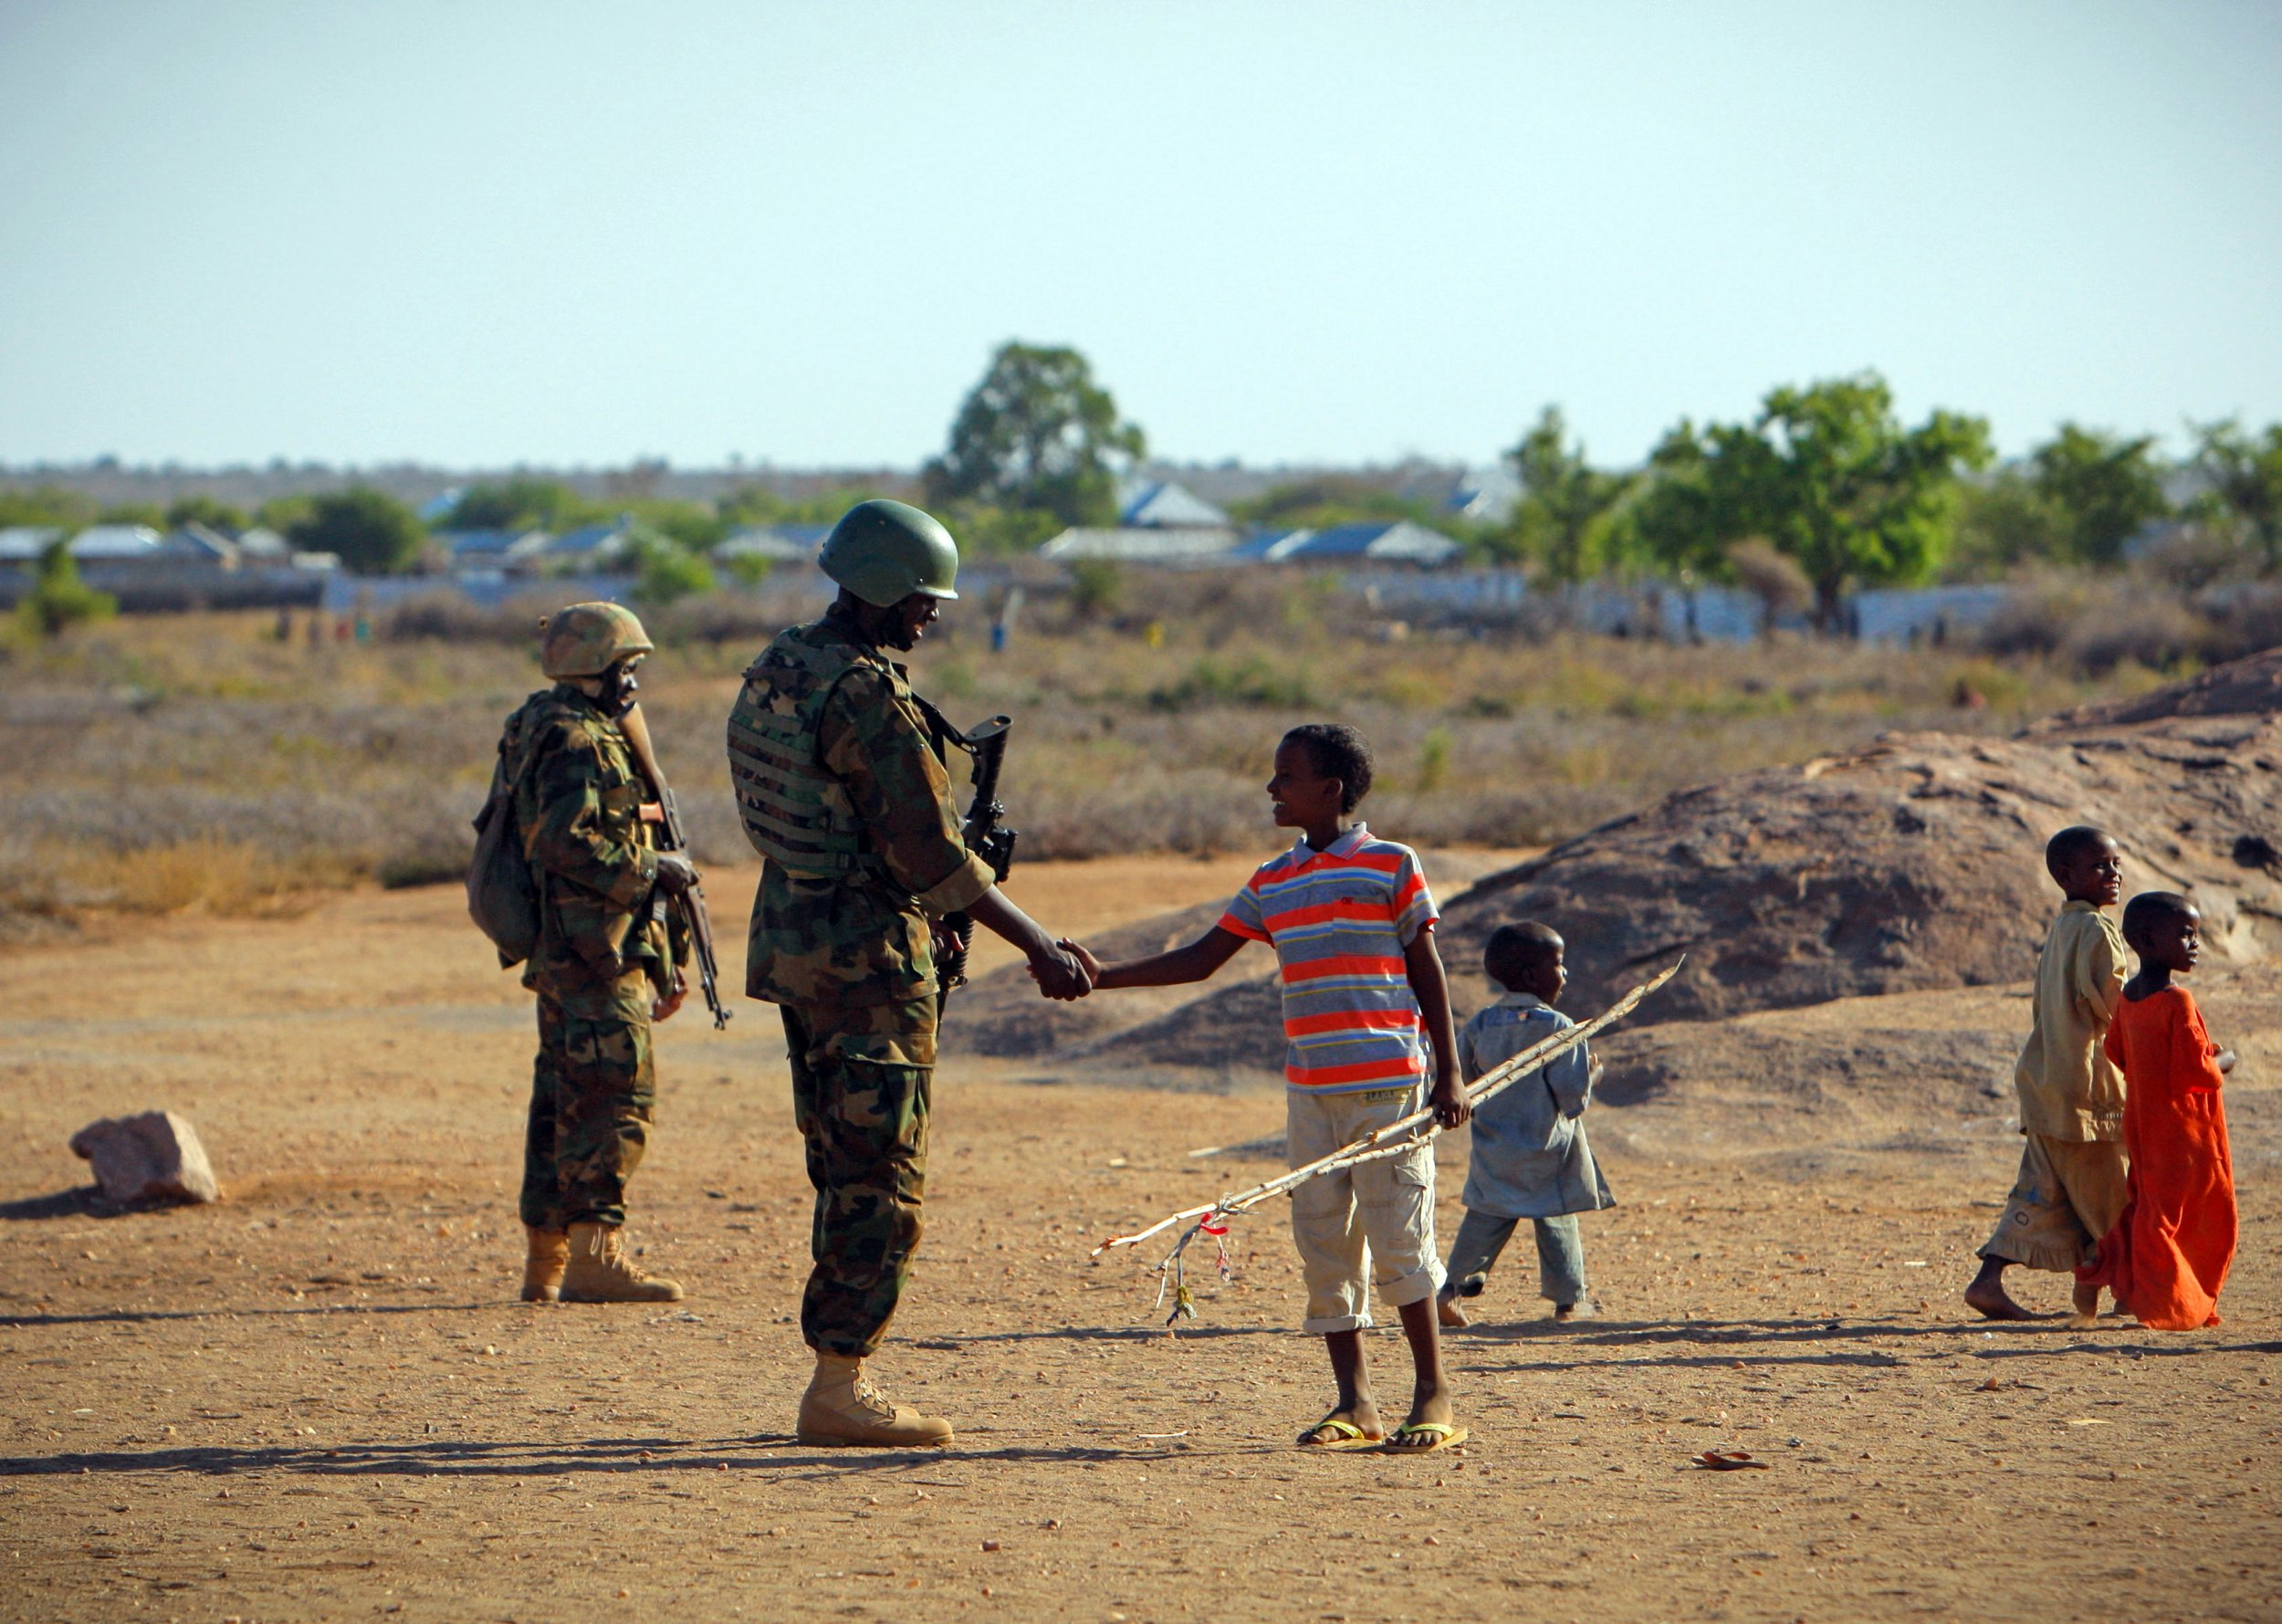 Somalia children soldier